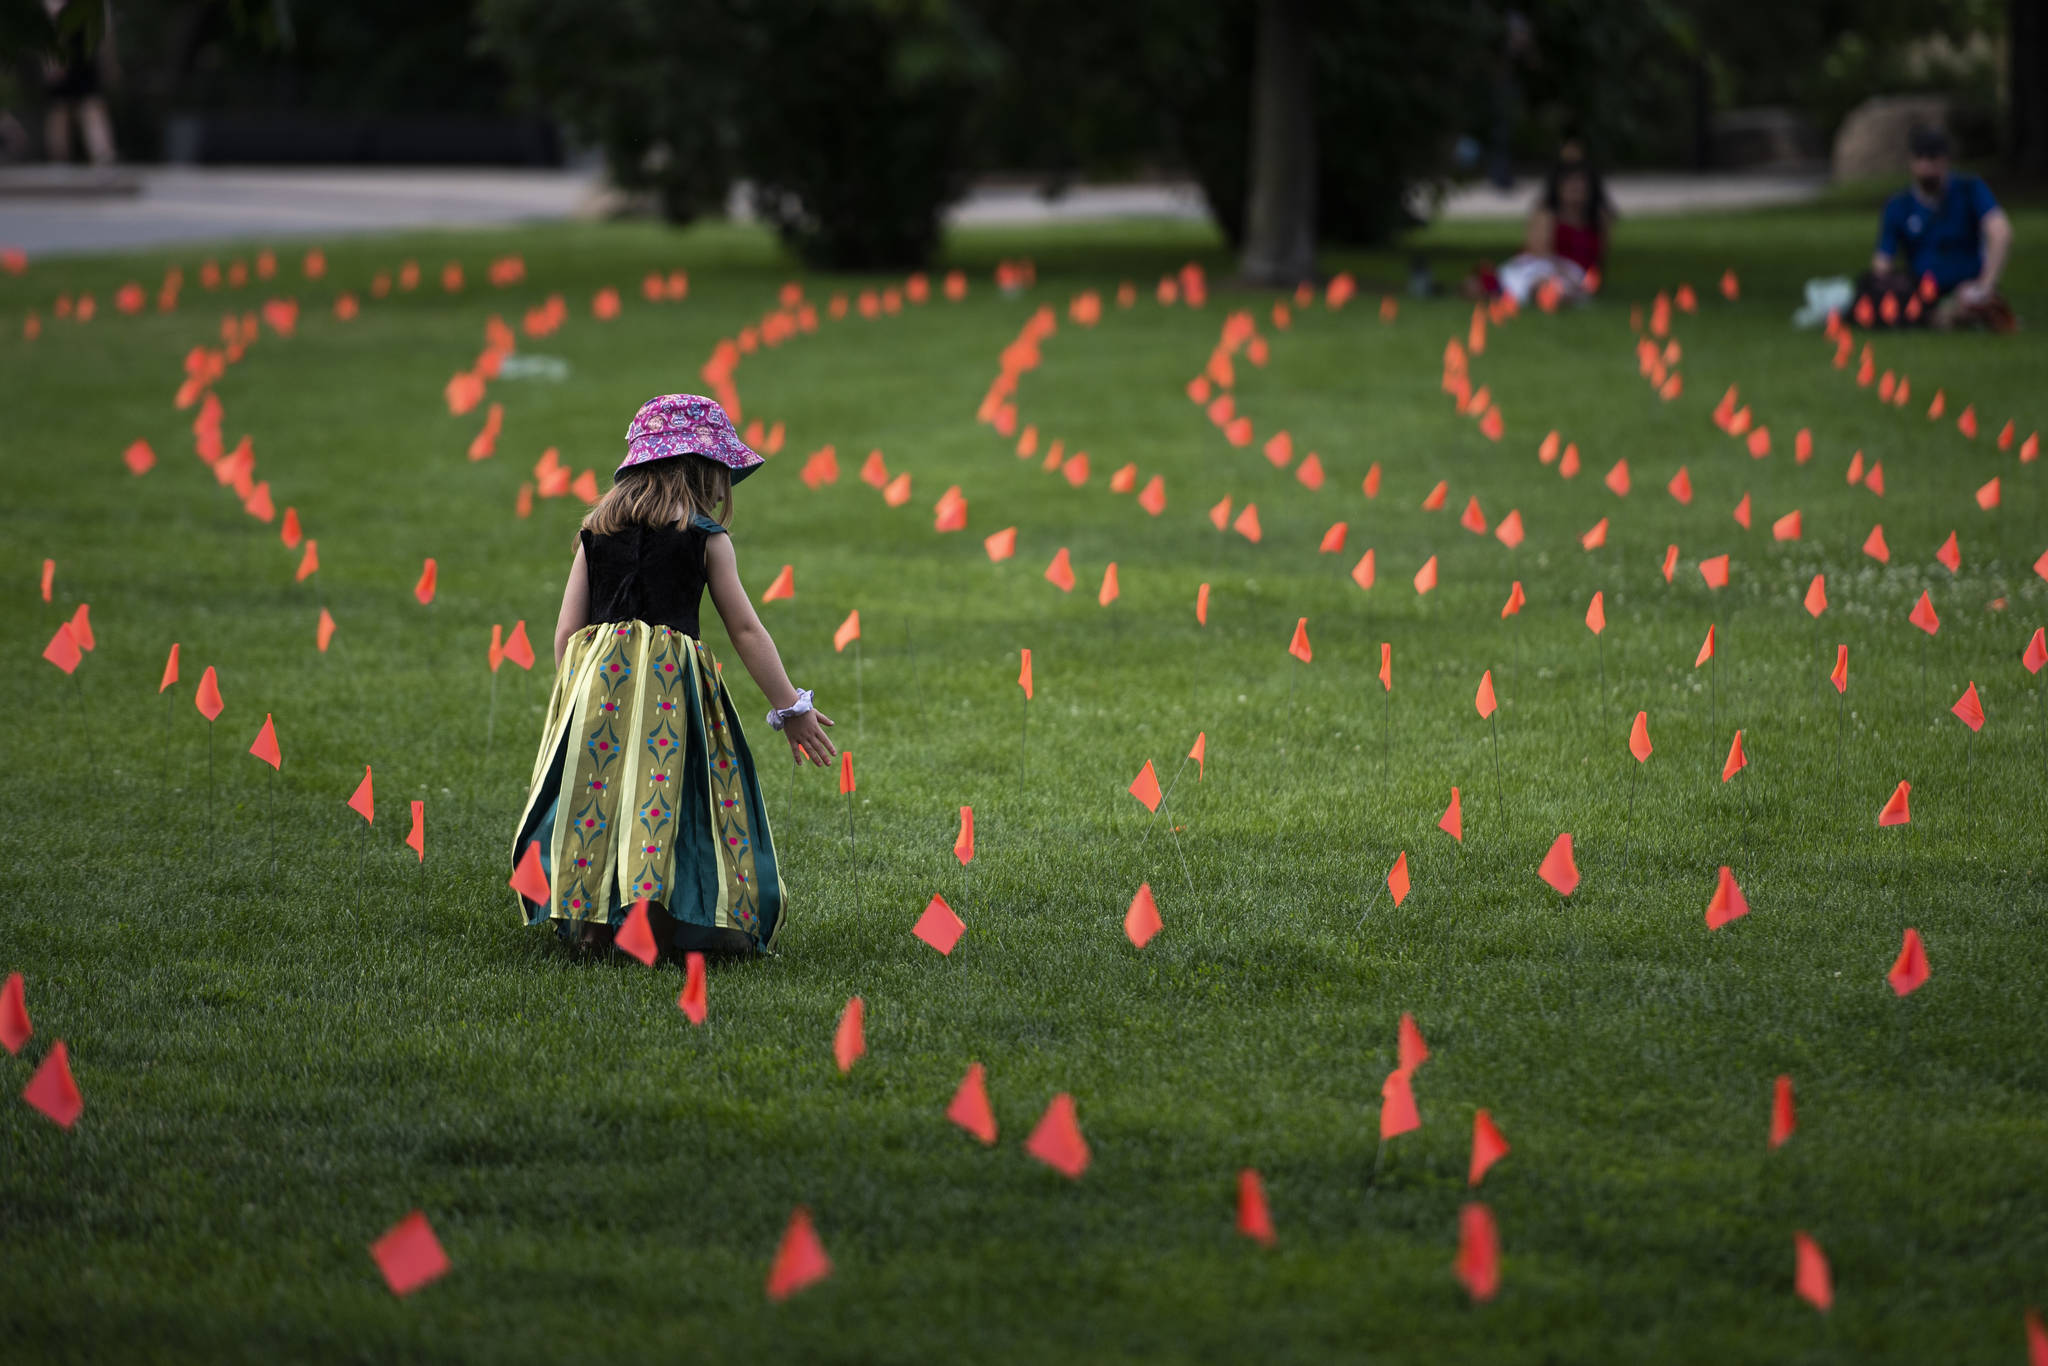 Margot King, 4, touches an orange flag, representing children who died while attending Indian Residential Schools in Canada, placed in the grass at Major's Hill Park in Ottawa, on Canada Day, Thursday, July 1, 2021. THE CANADIAN PRESS/Justin Tang